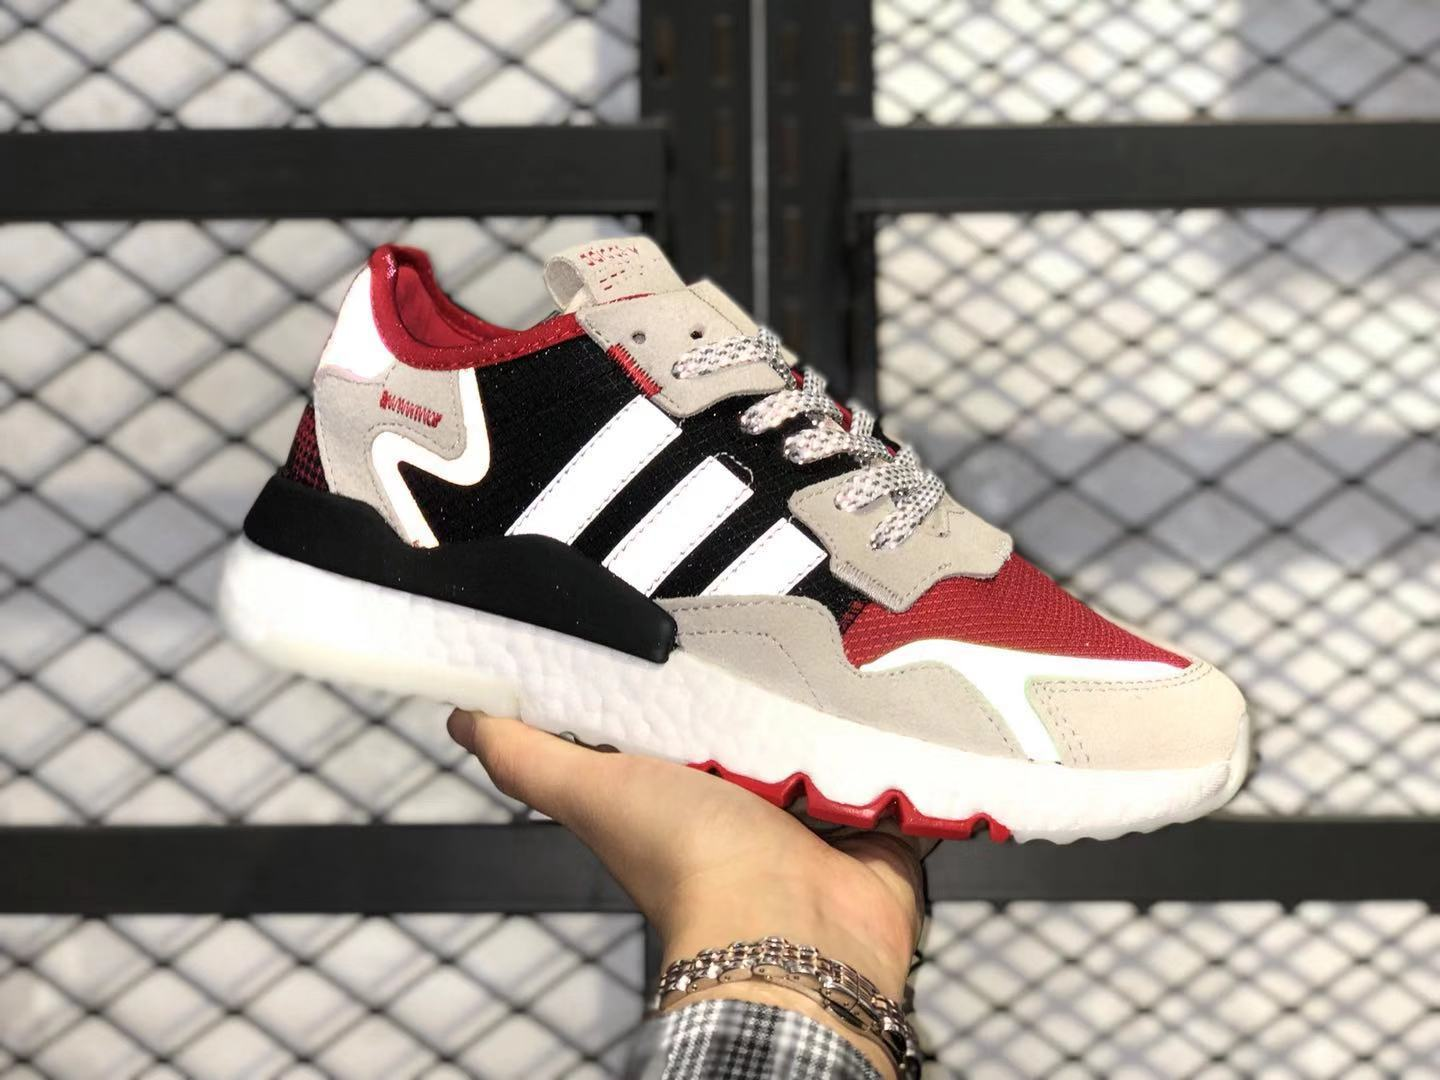 Adidas Nite Jogger Boost FV3872 Scarle/Black-Crywht Athletic Sneakers In Stock